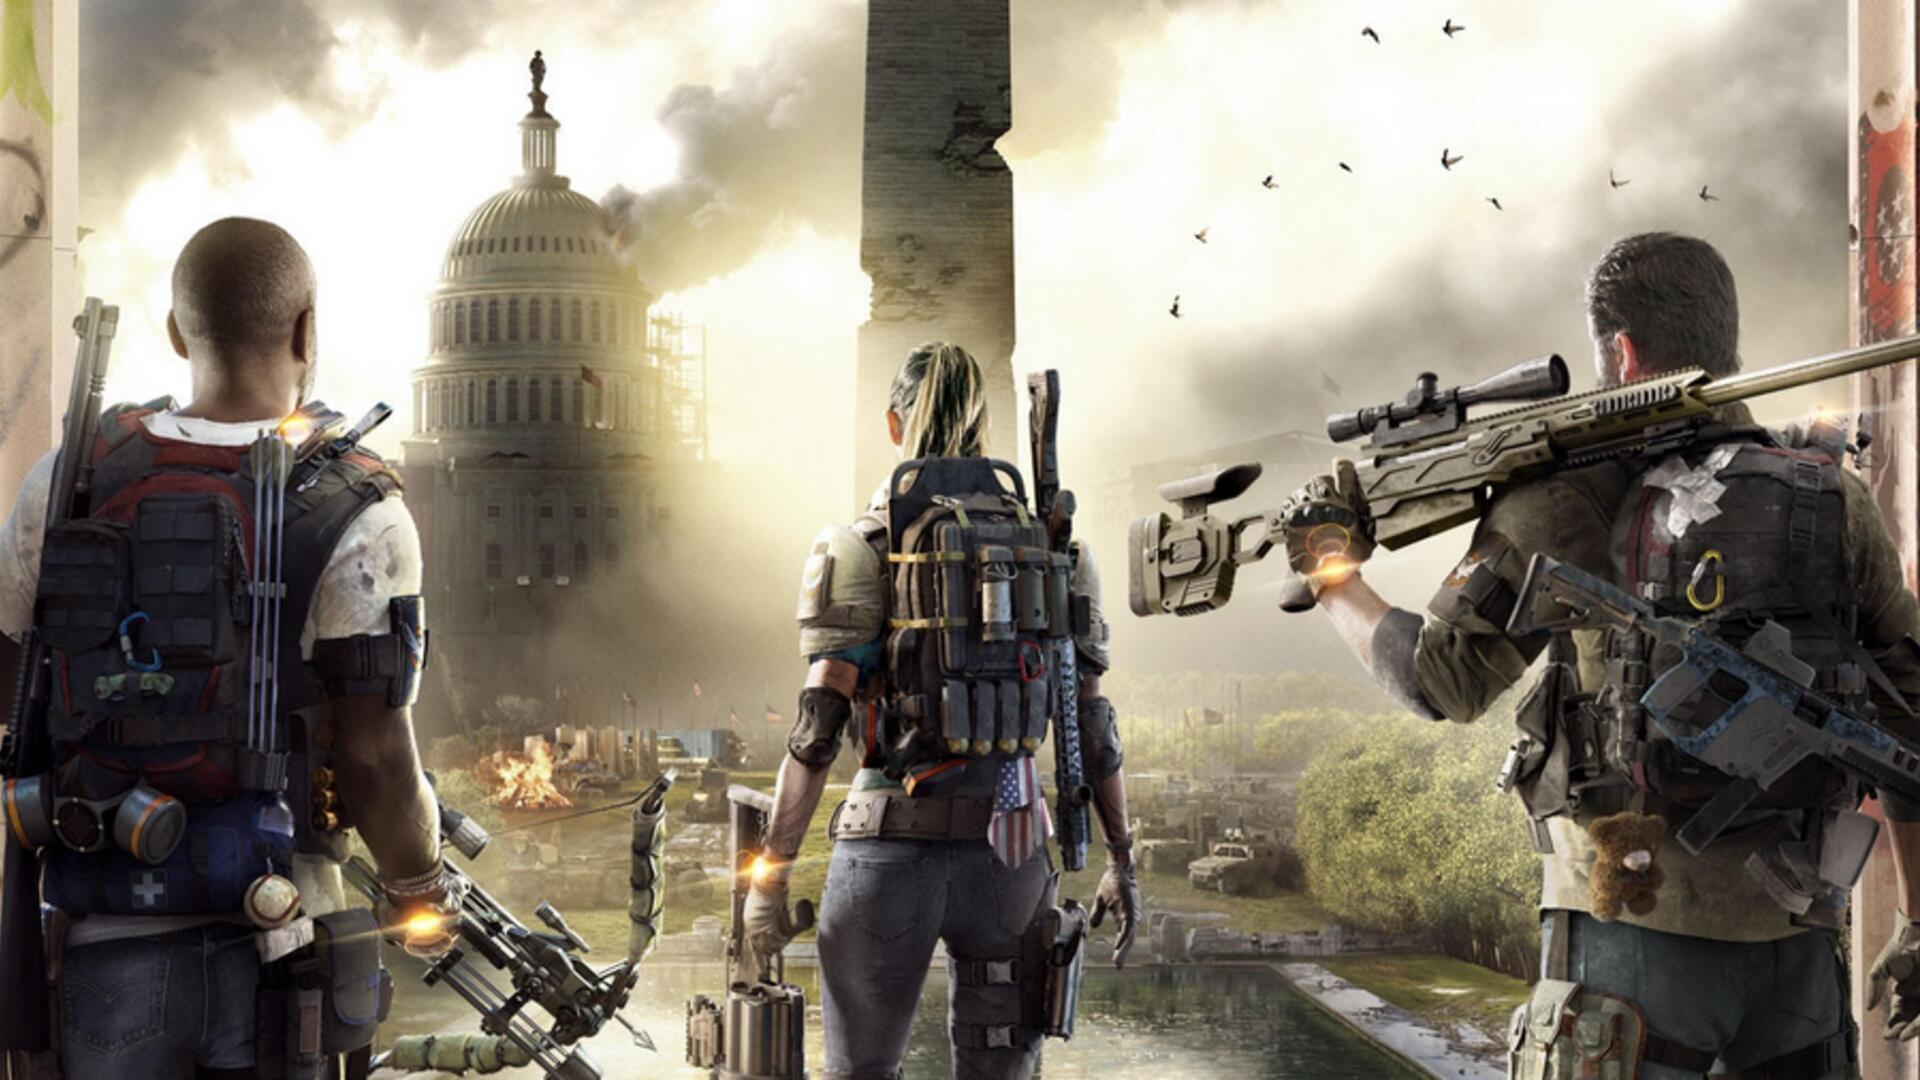 The Division 2 Skips Steam as Ubisoft Chooses Epic Games Store